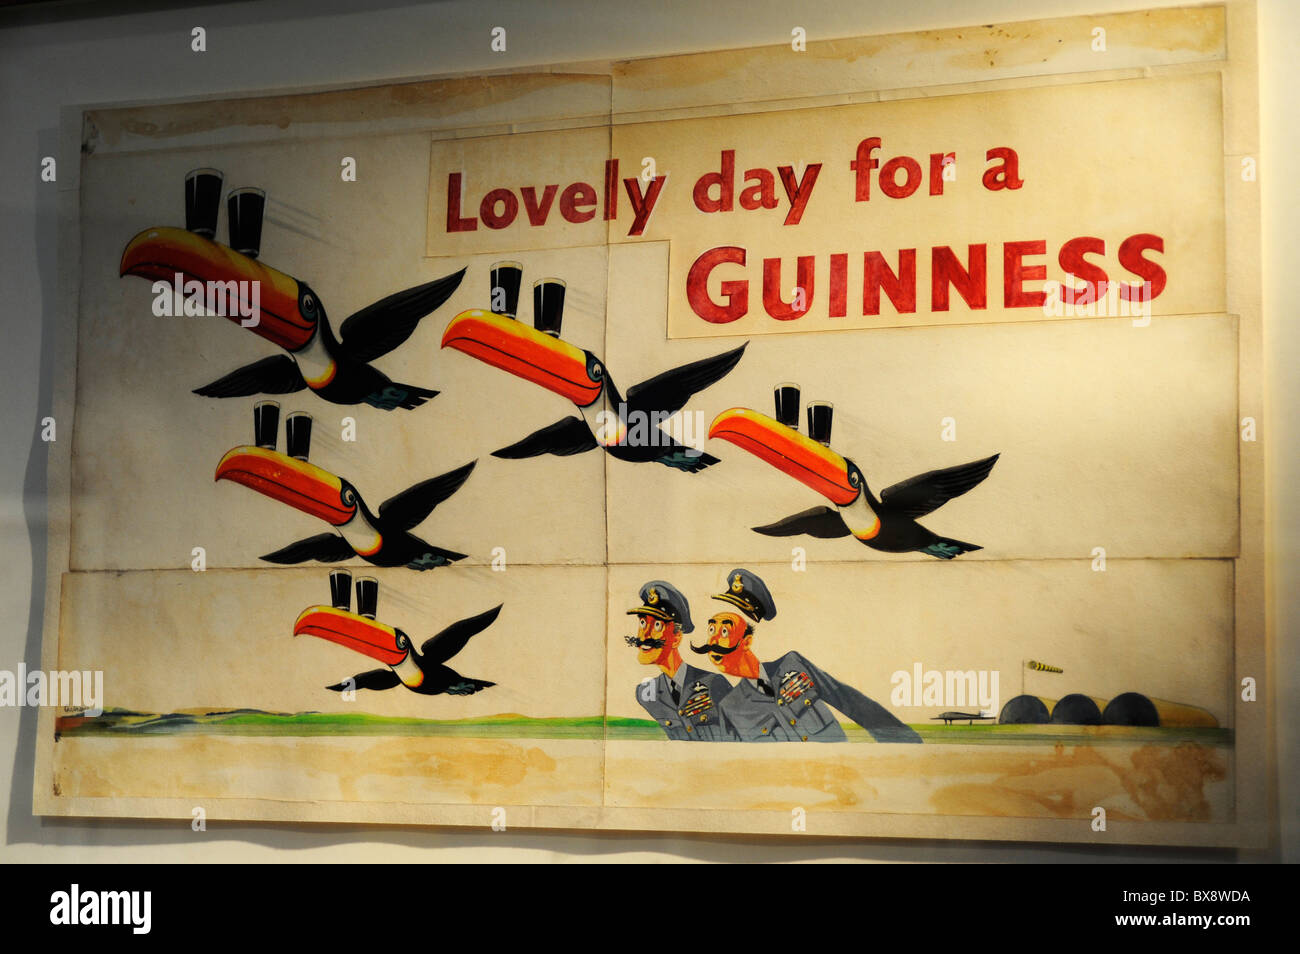 Guinness Stock Photos & Guinness Stock Images - Alamy